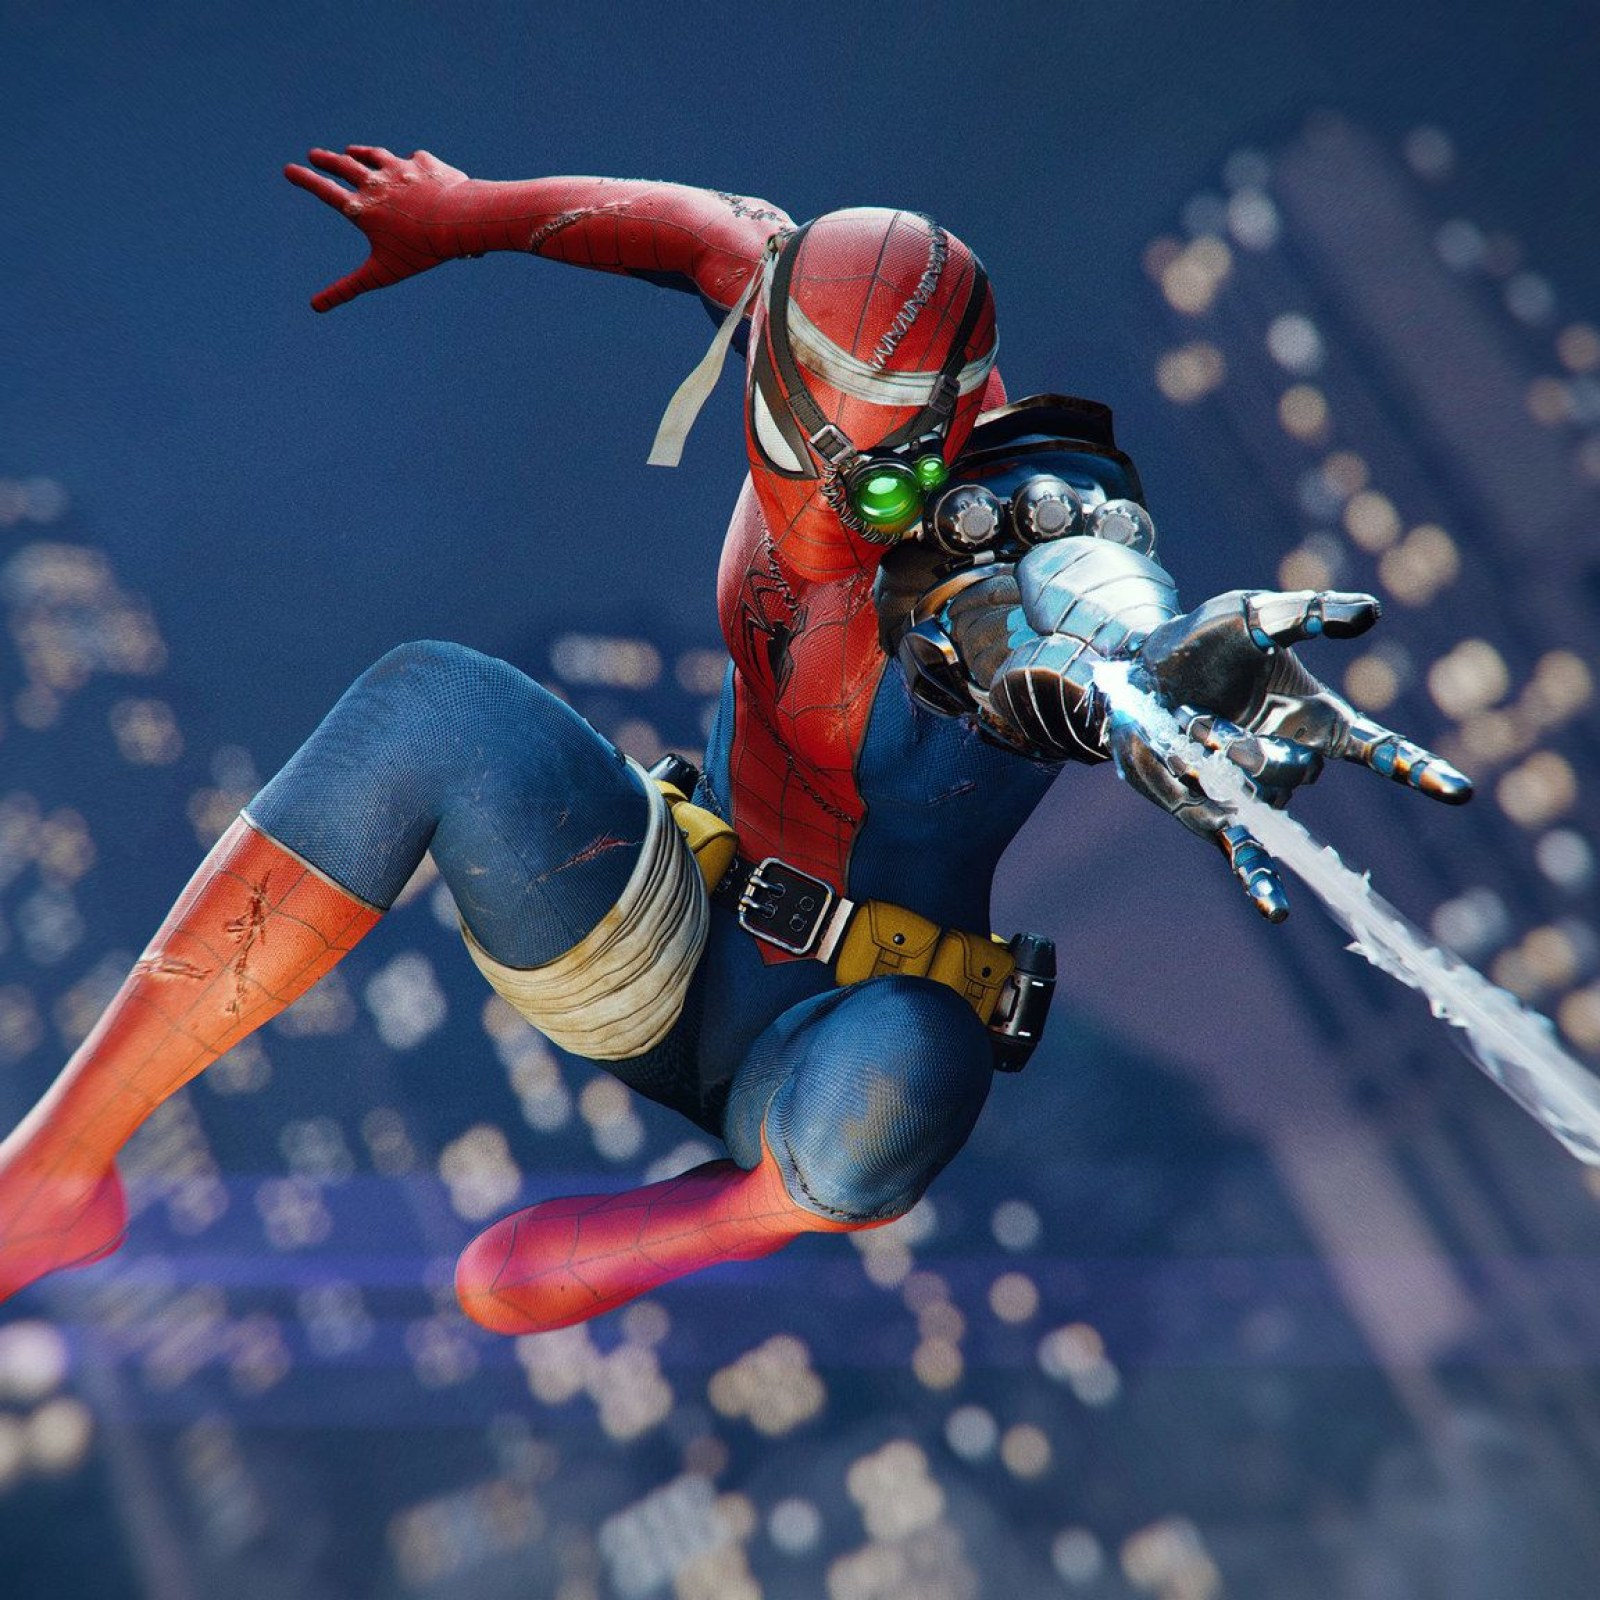 Marvel's Spider-Man' Silver Lining Suits: How to Unlock New